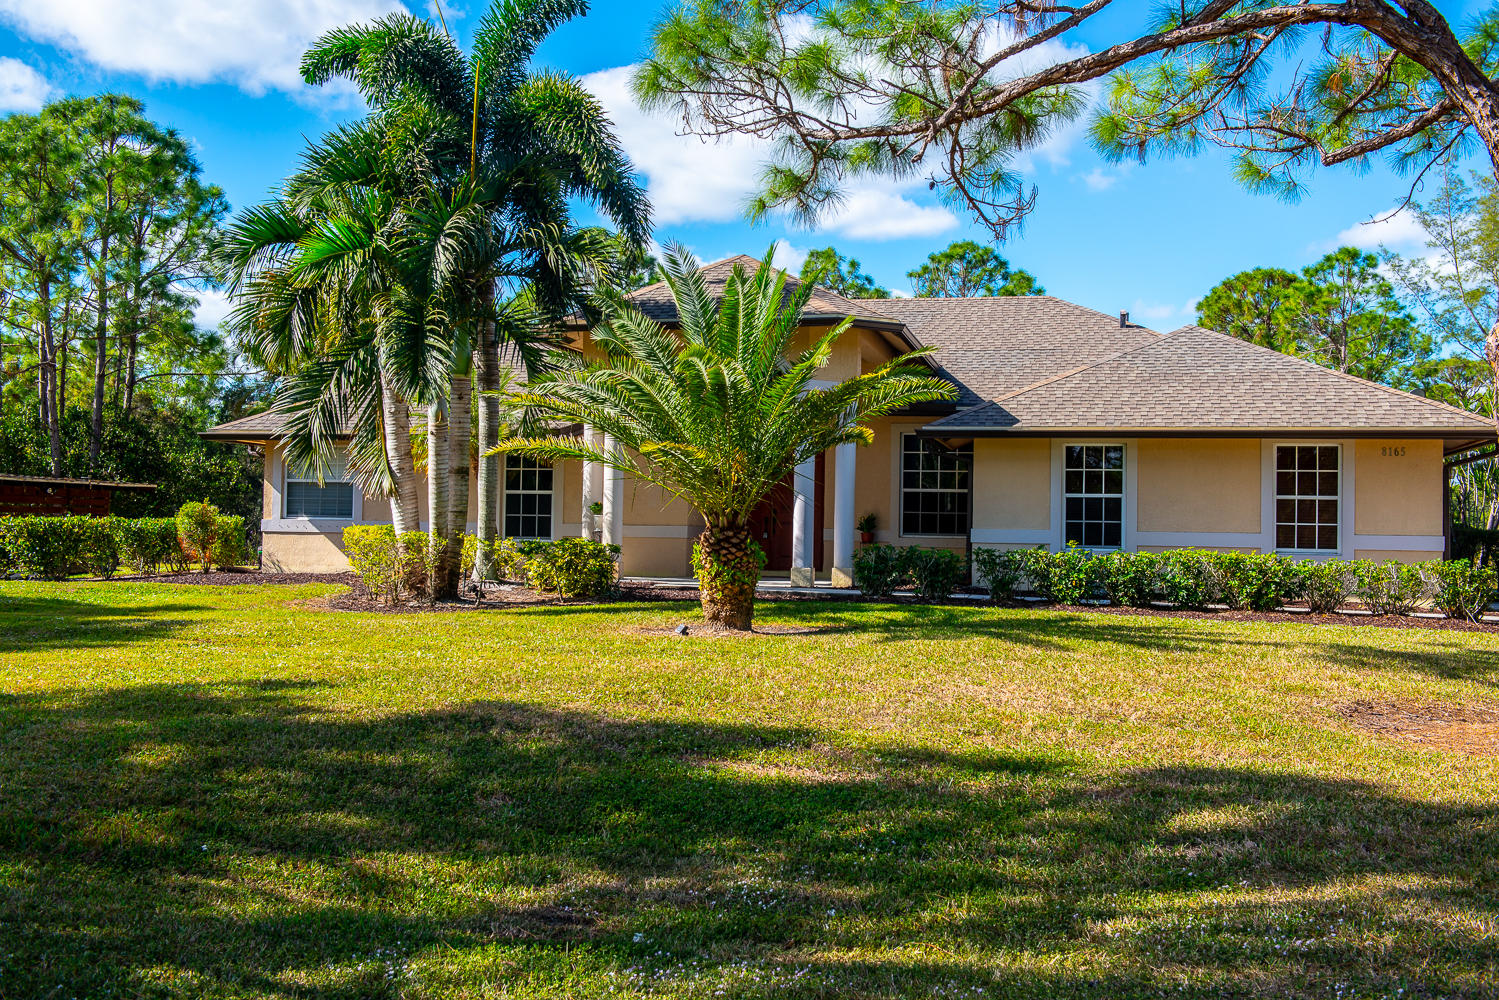 8165 120th Avenue, West Palm Beach, Florida 33412, 5 Bedrooms Bedrooms, ,3 BathroomsBathrooms,Single Family,For Sale,120th,RX-10493603